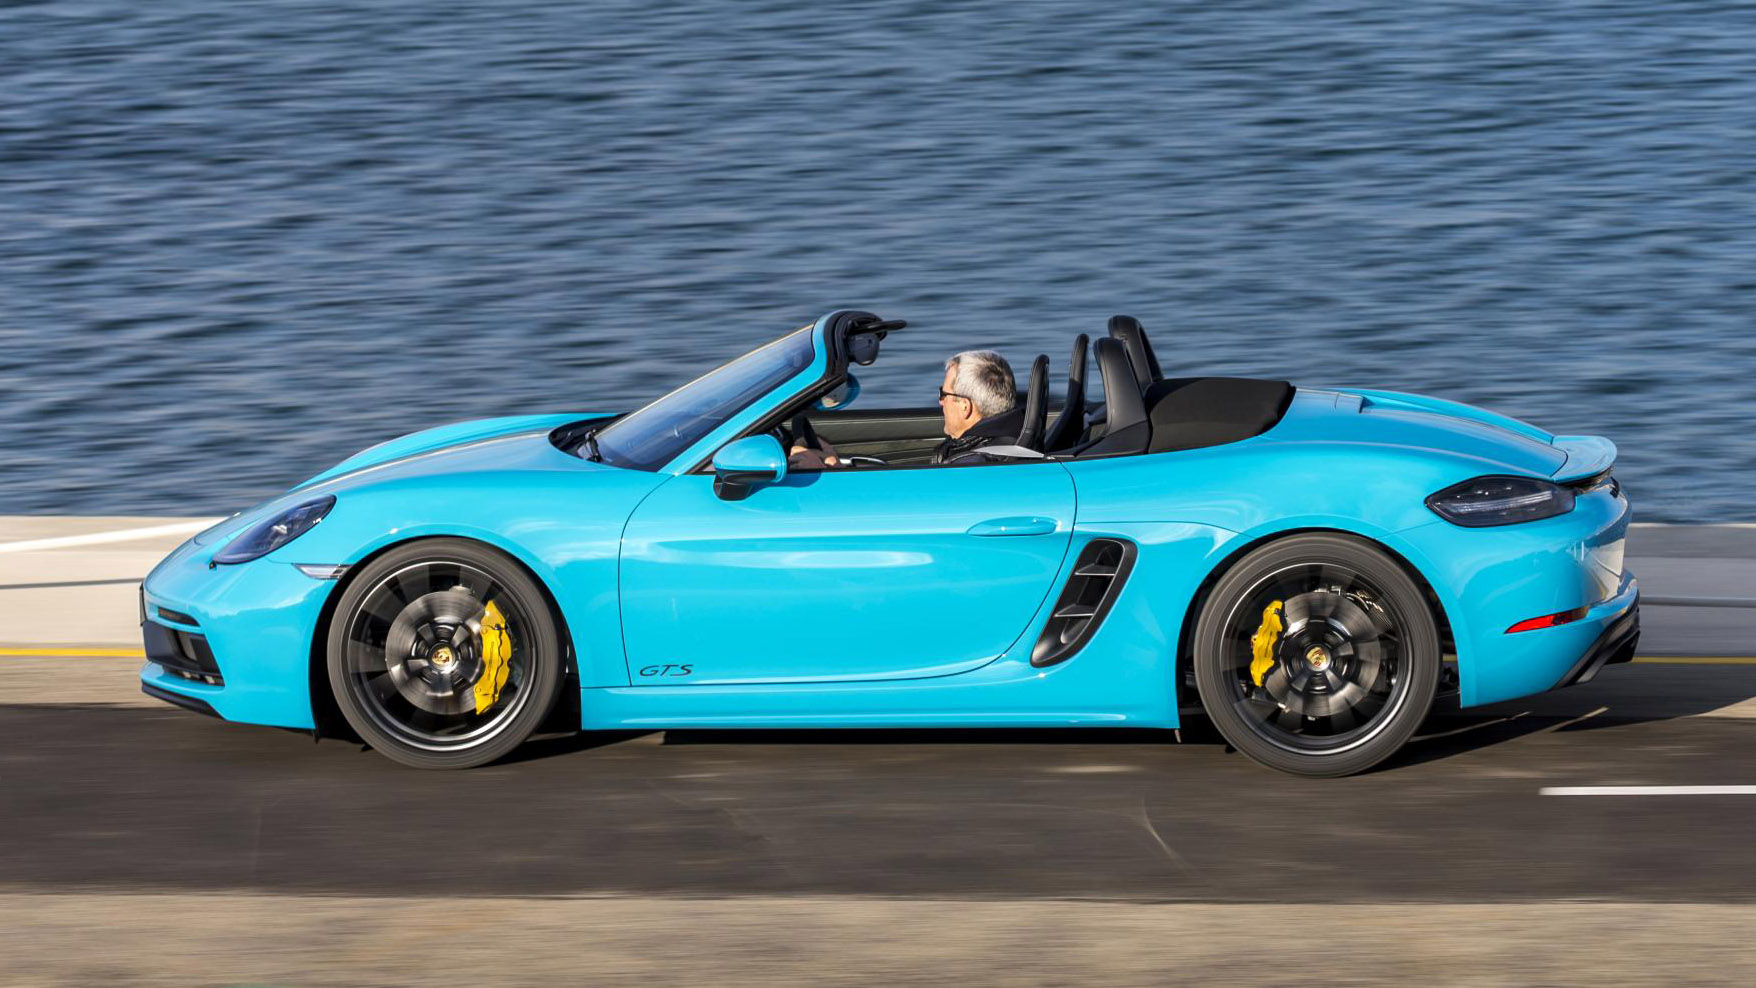 Porsche 718 Gts Review Pokier Cayman And Boxster Driven Top Gear